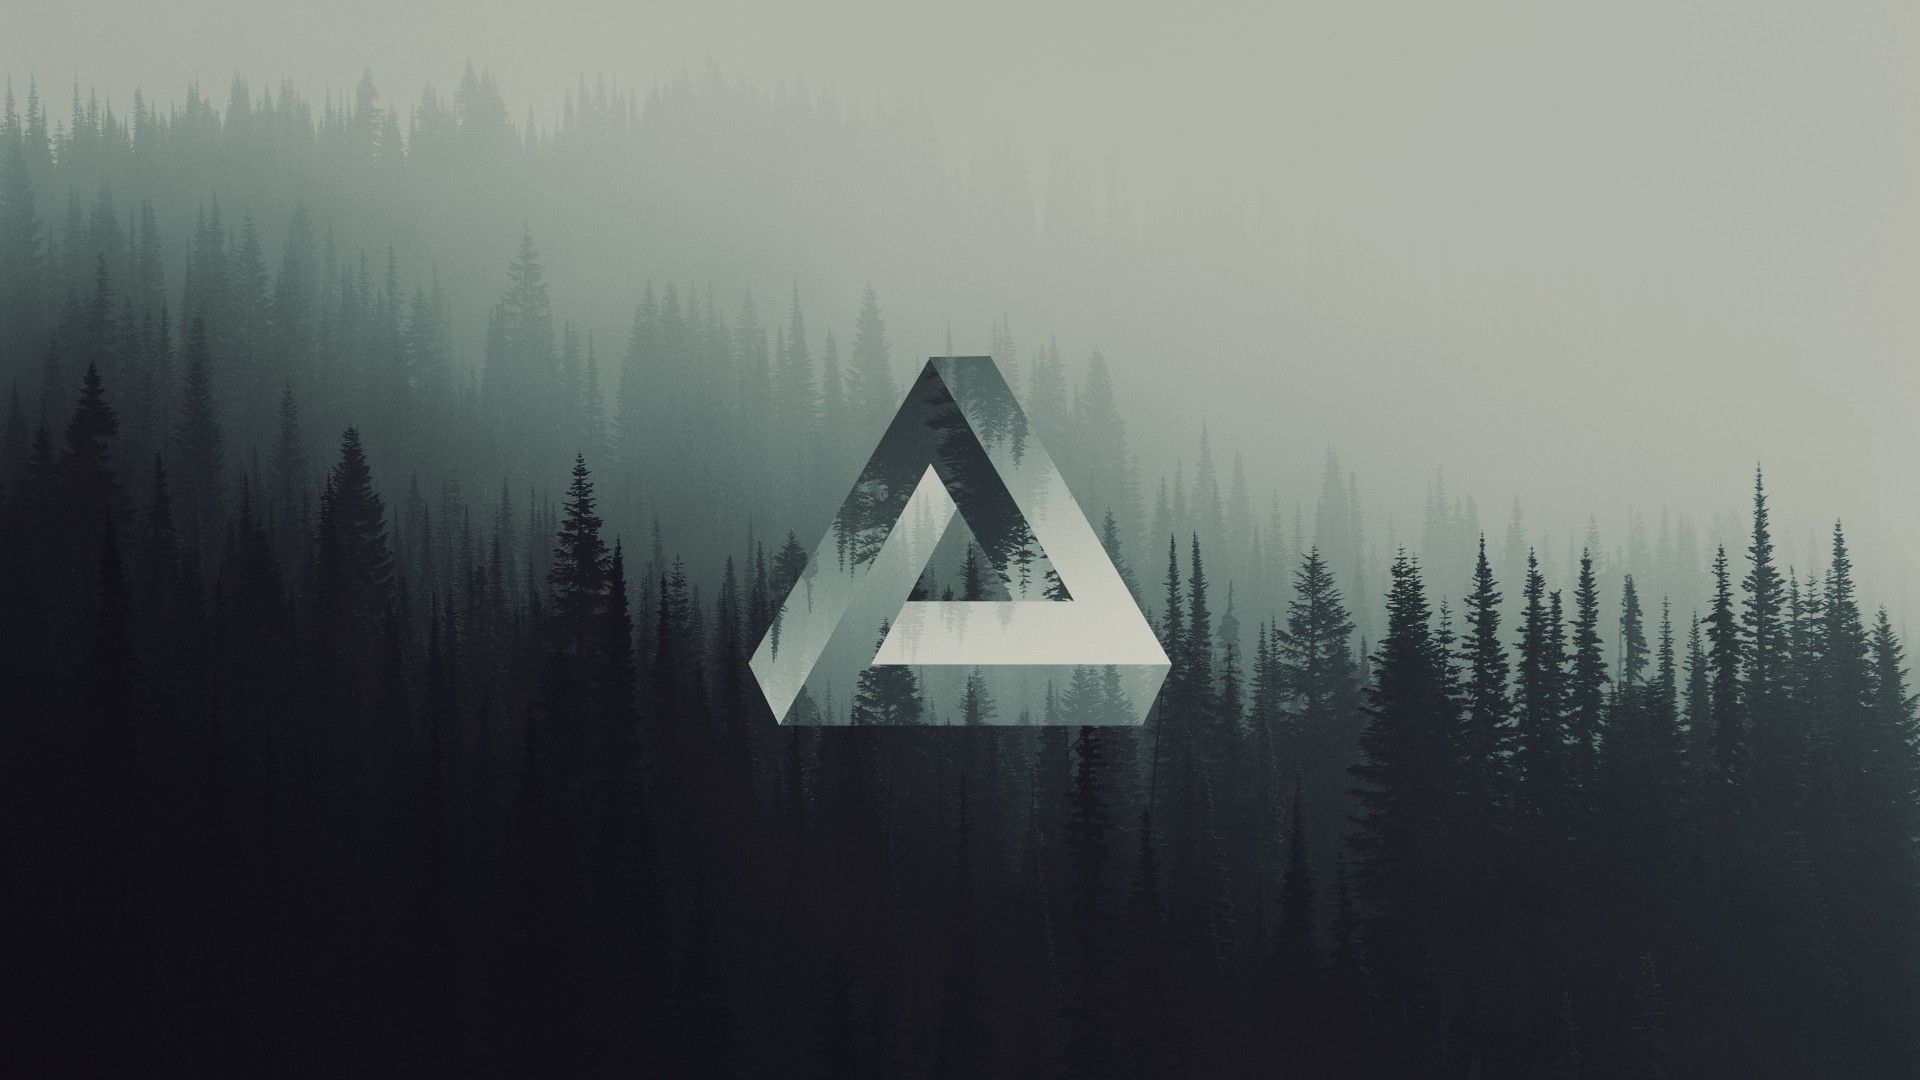 Gravity Falls Landscapes Phone Wallpaper Triangle Wallpapers Top Free Triangle Backgrounds